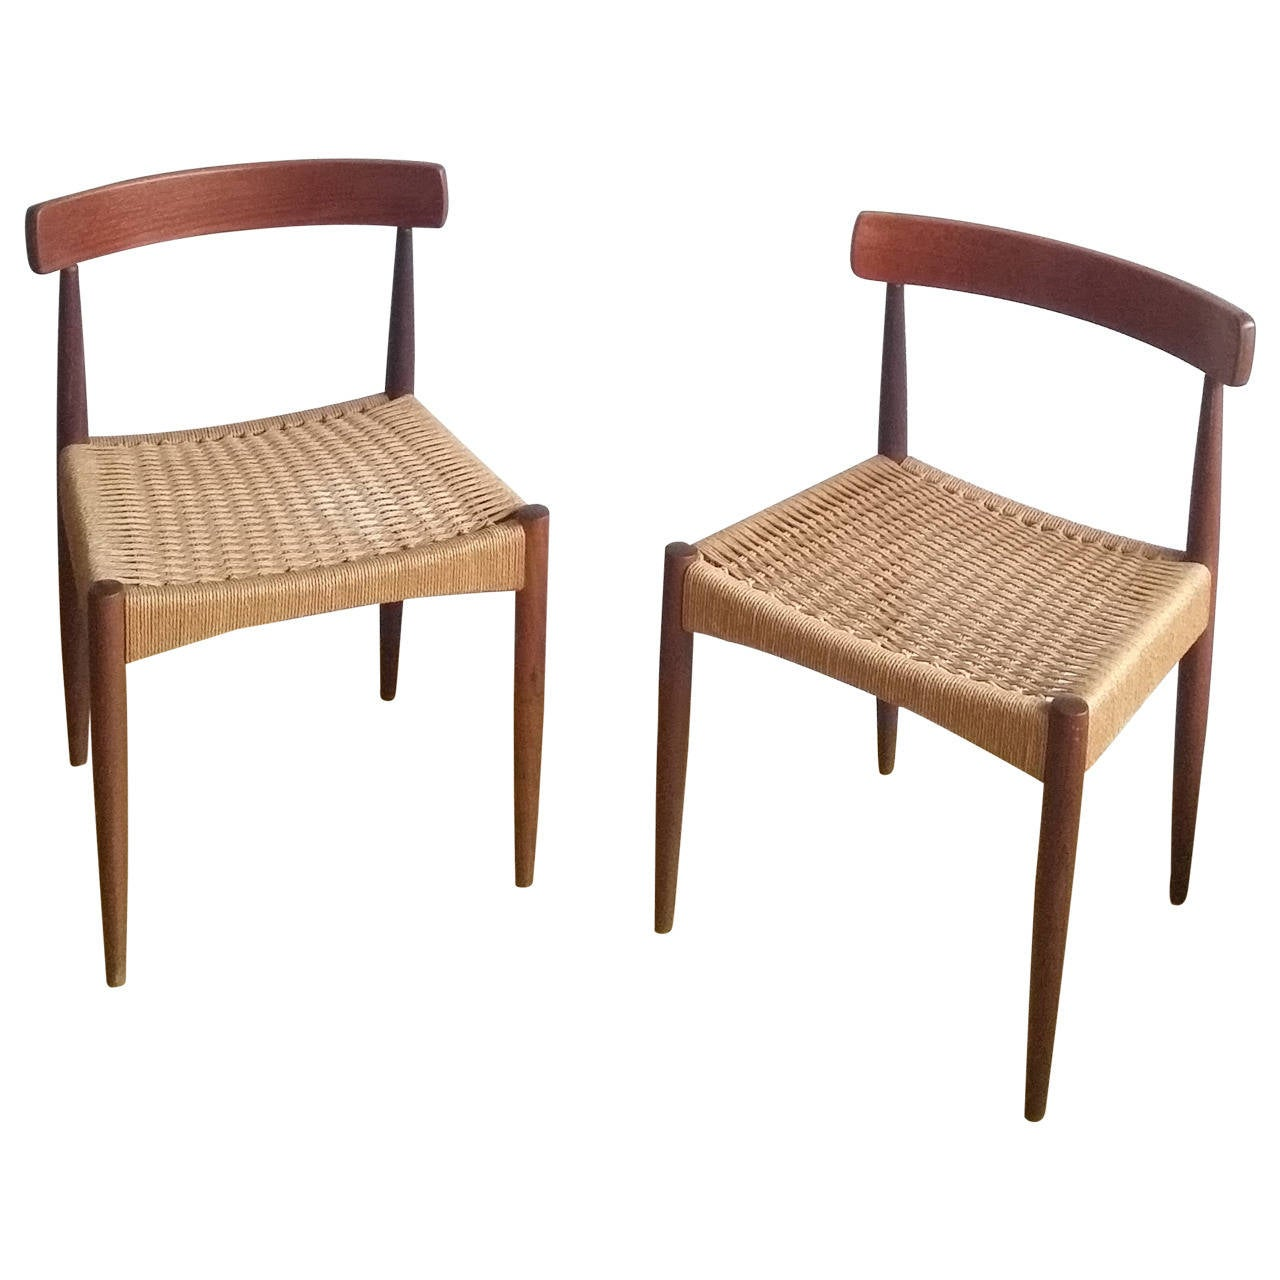 Beau Pair Of Signed Danish MK Chairs, Denmark, 1960s For Sale